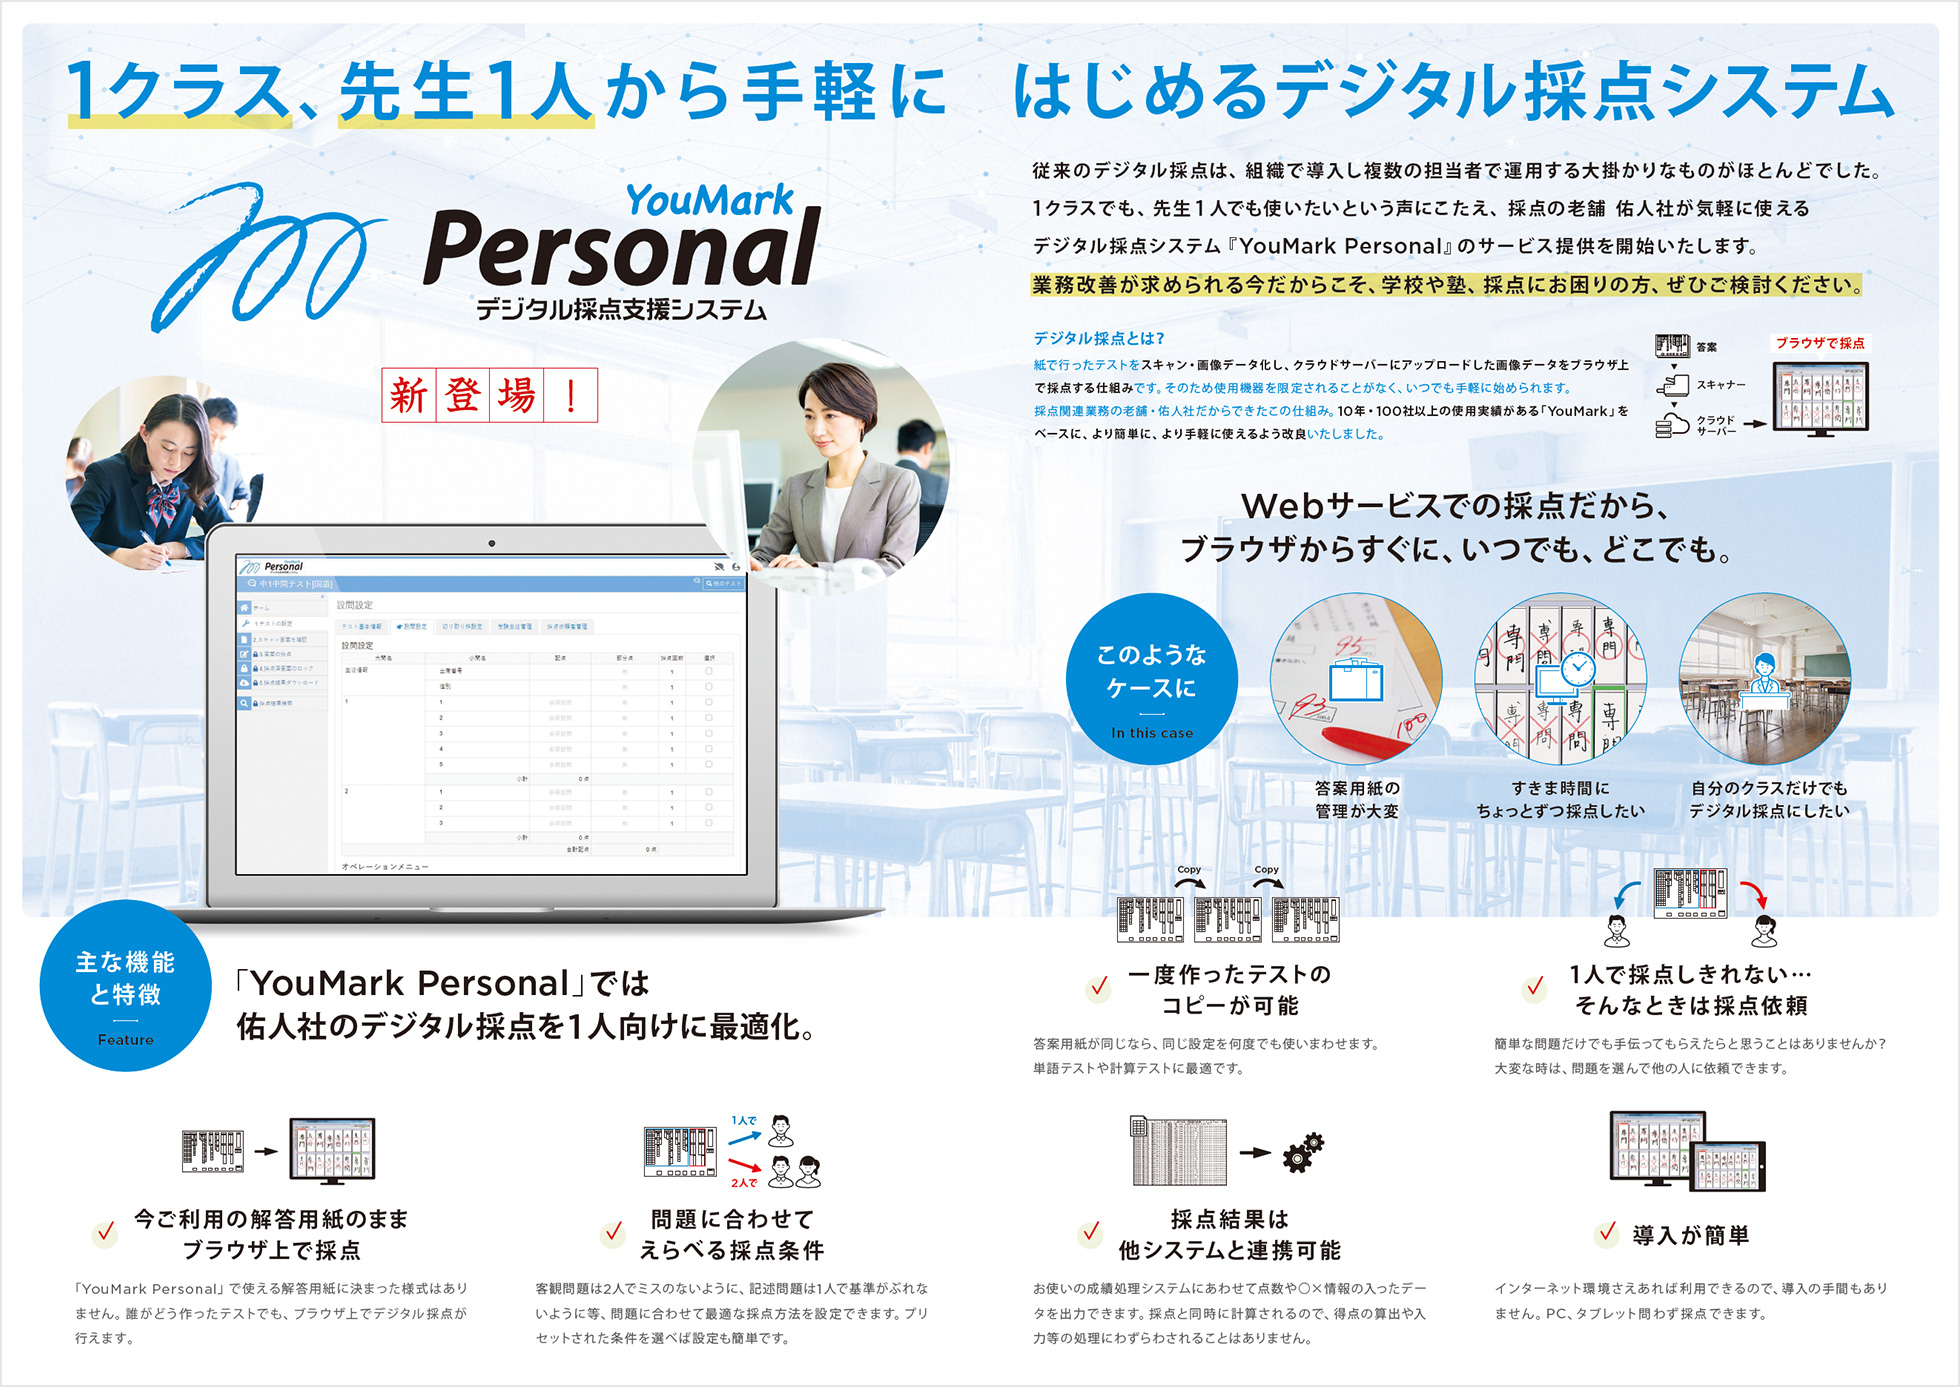 YouMark Personal